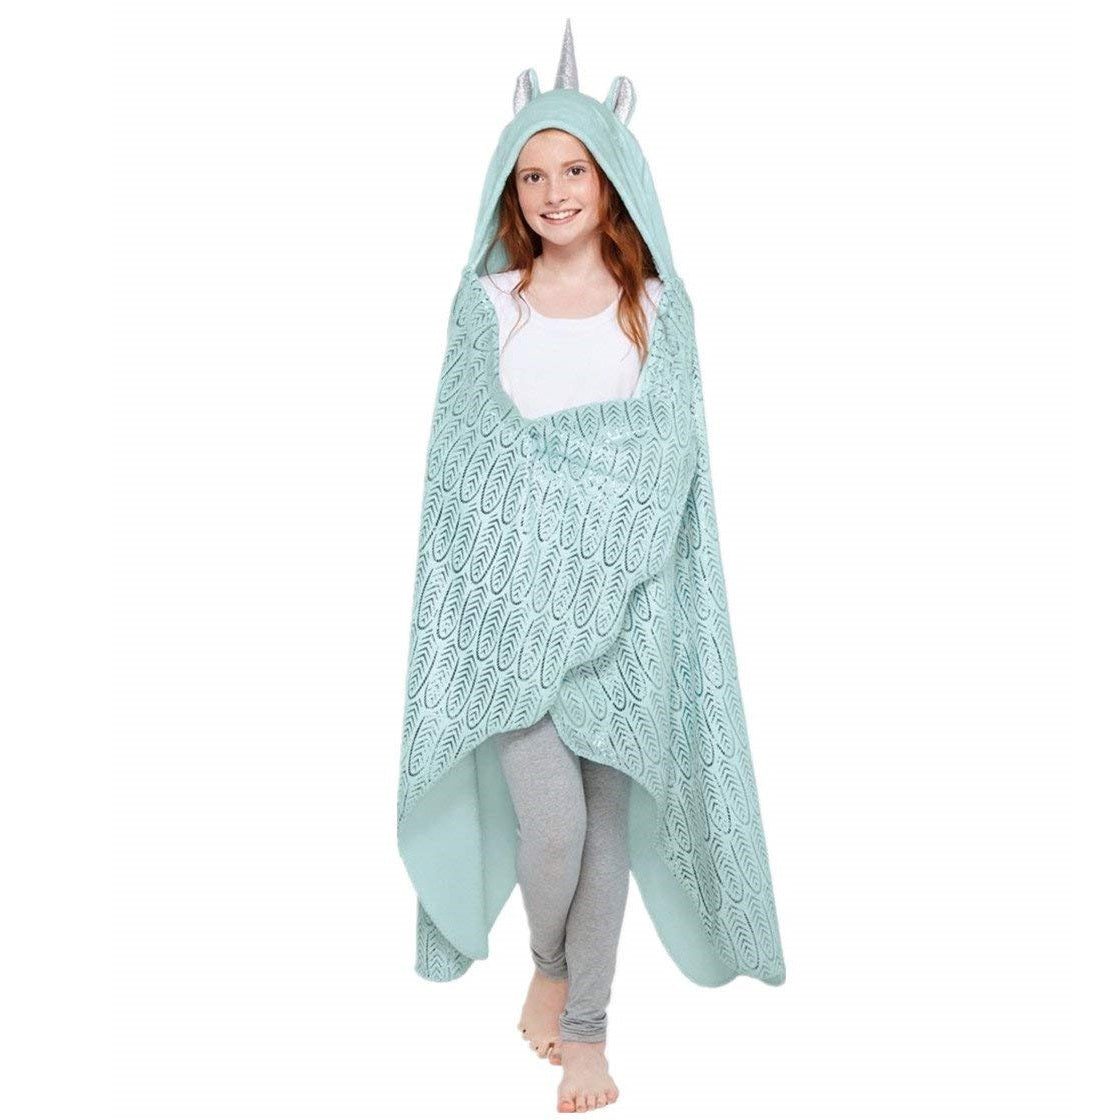 Cozy Unicorn Cloak